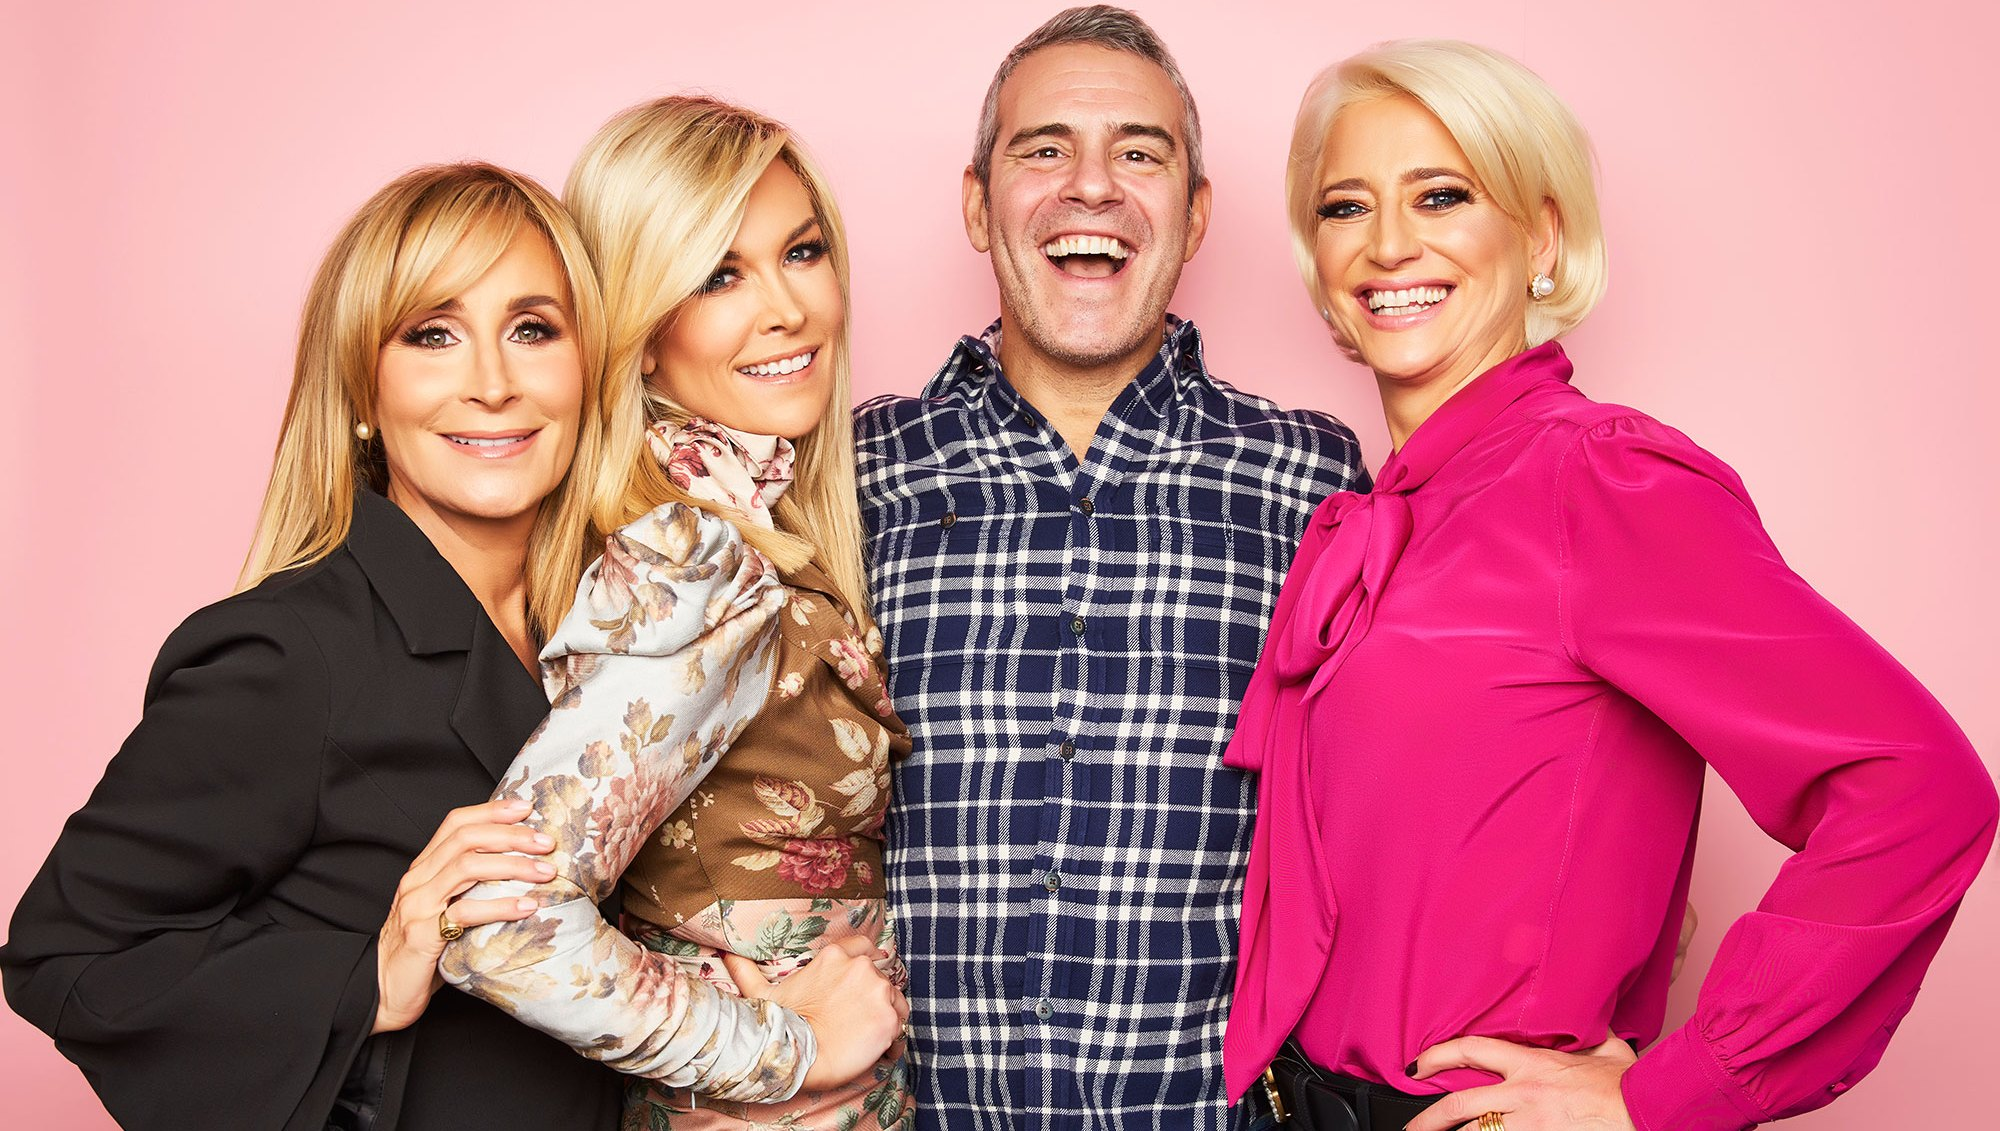 Sonja Morgan, Tinsley Mortimer, Andy Cohen, and Dorinda Medley Andy Cohen Says the Real Housewives Have Been 'Incredible' Since His Son's Birth: 'They're All Great Moms'